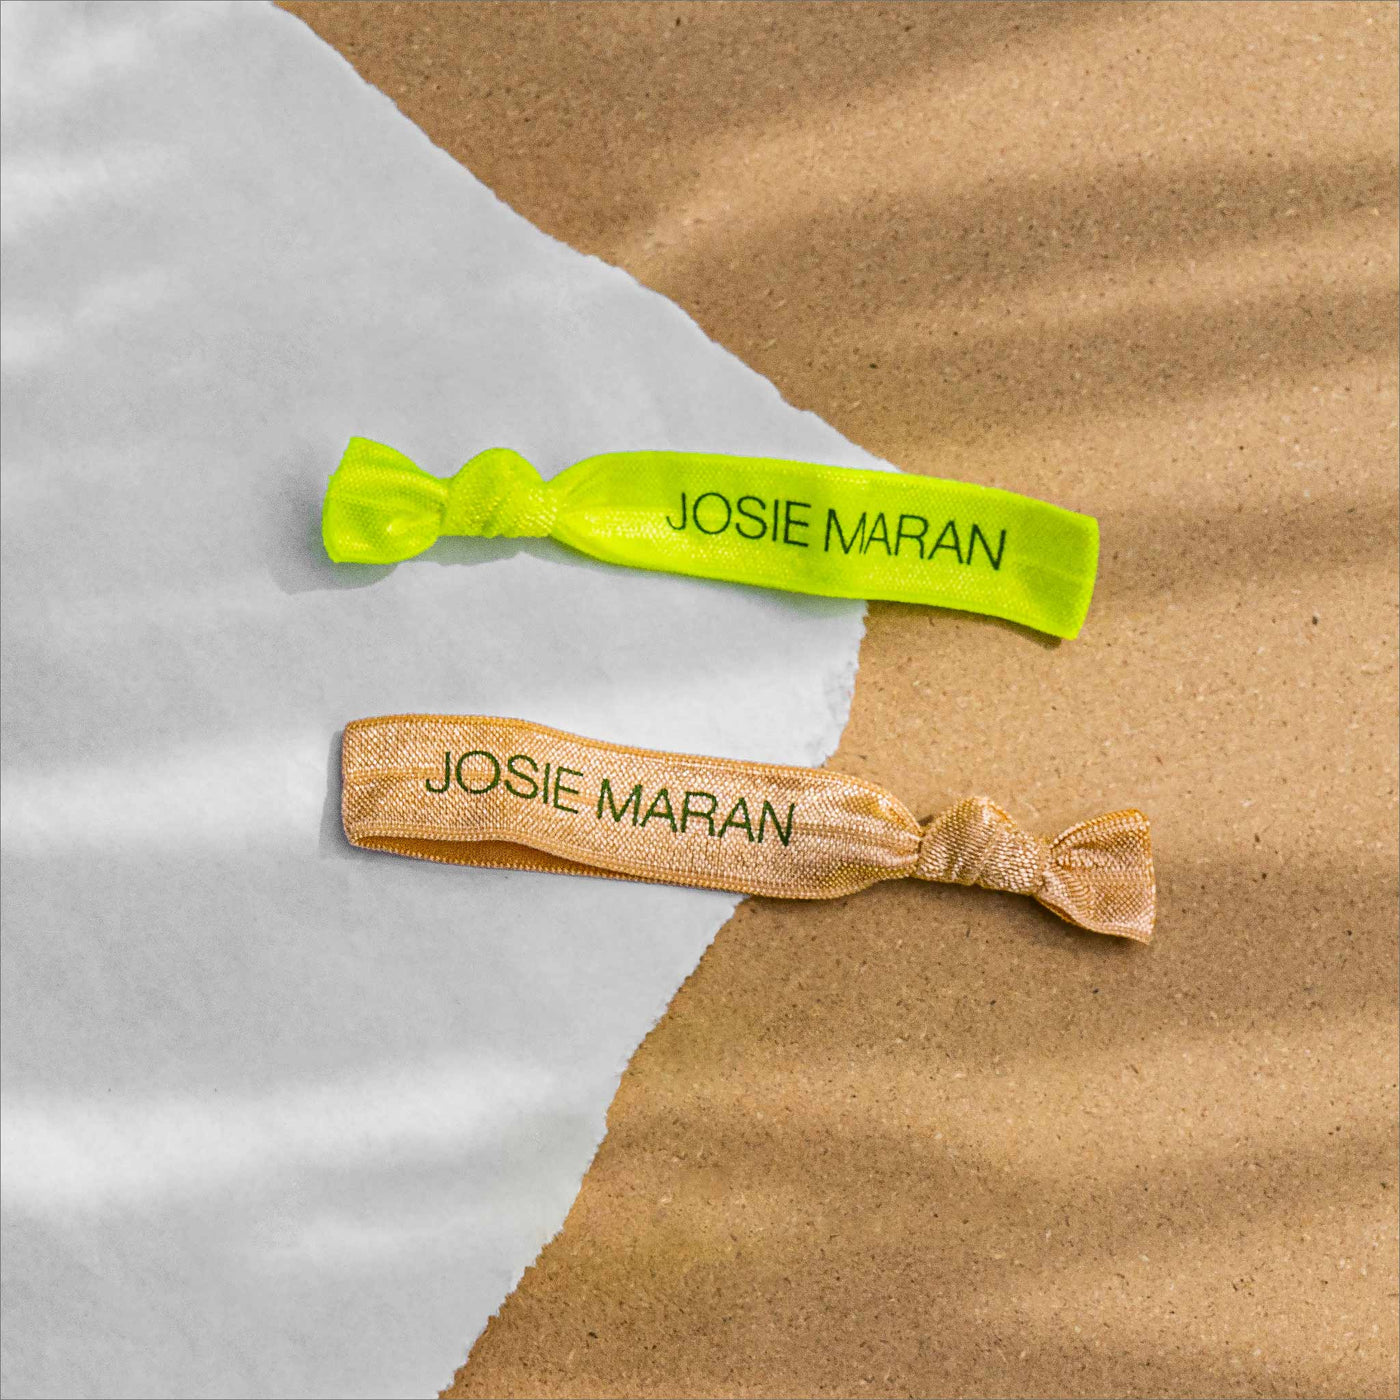 THE JOSIE MARAN HAIR TIES